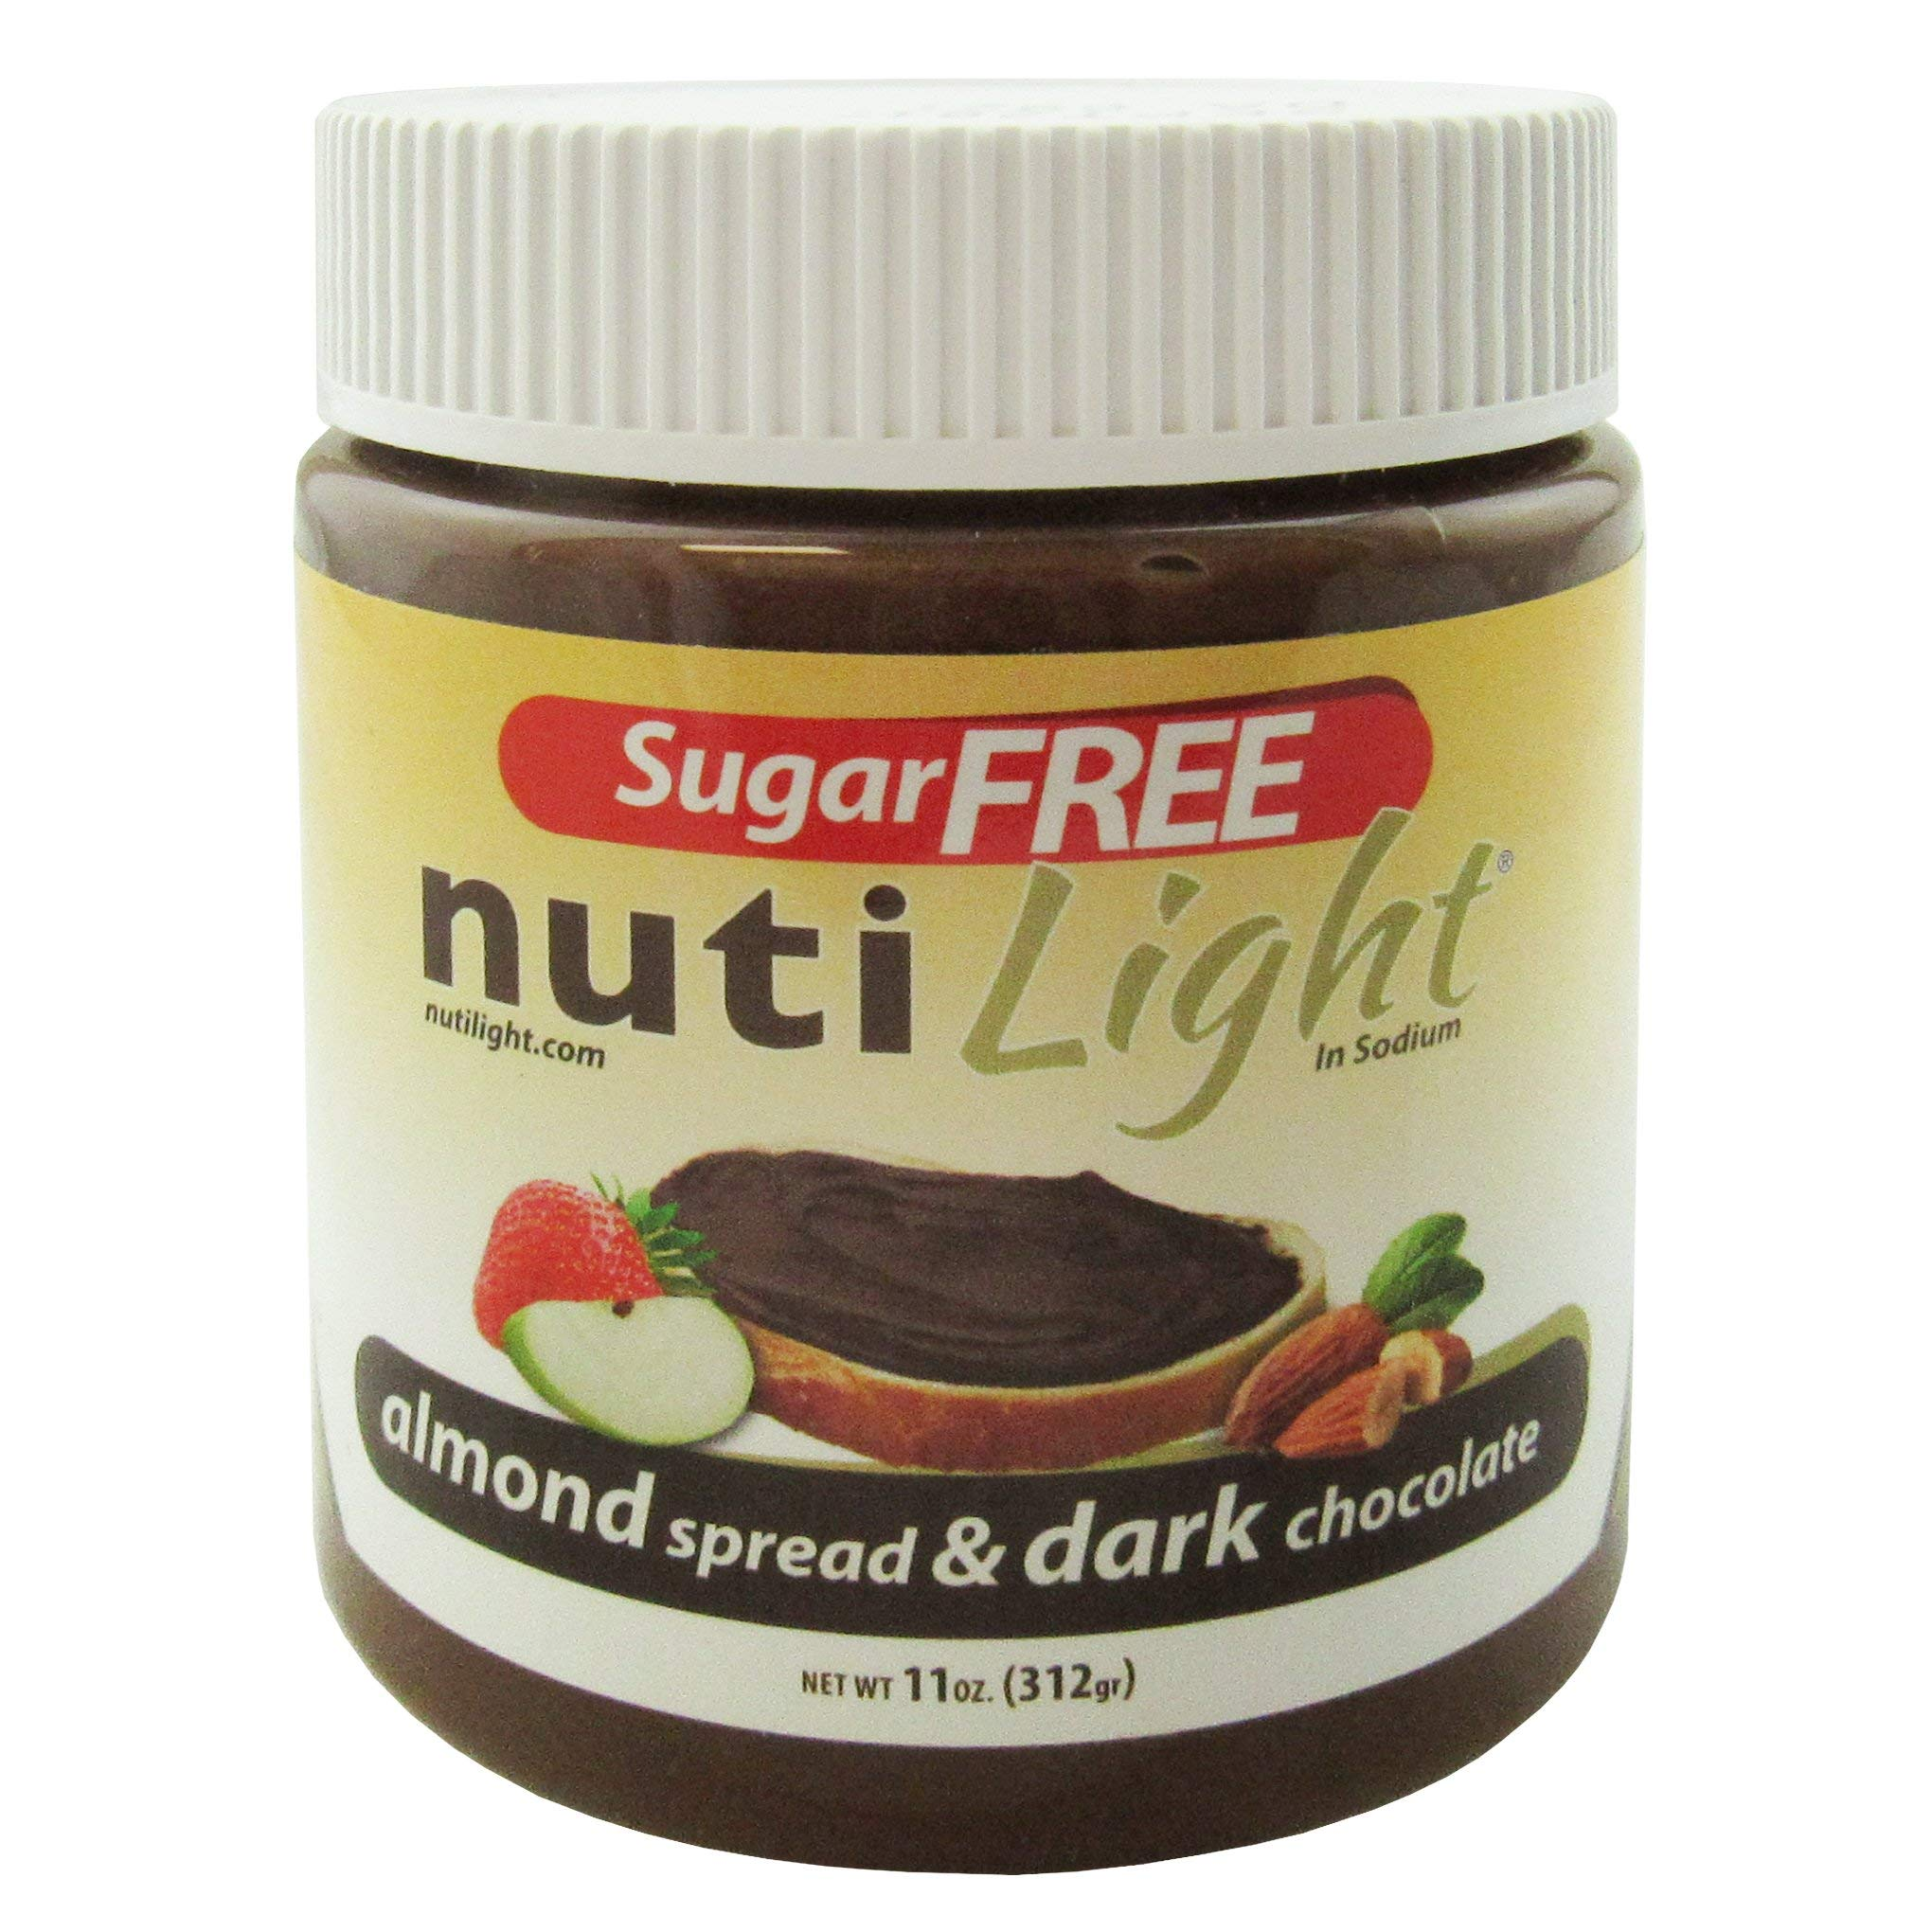 Nutilight Sugar-Free Keto-friendly Almond Spread and Dark Chocolate 11 Ounces (Pack of 1)